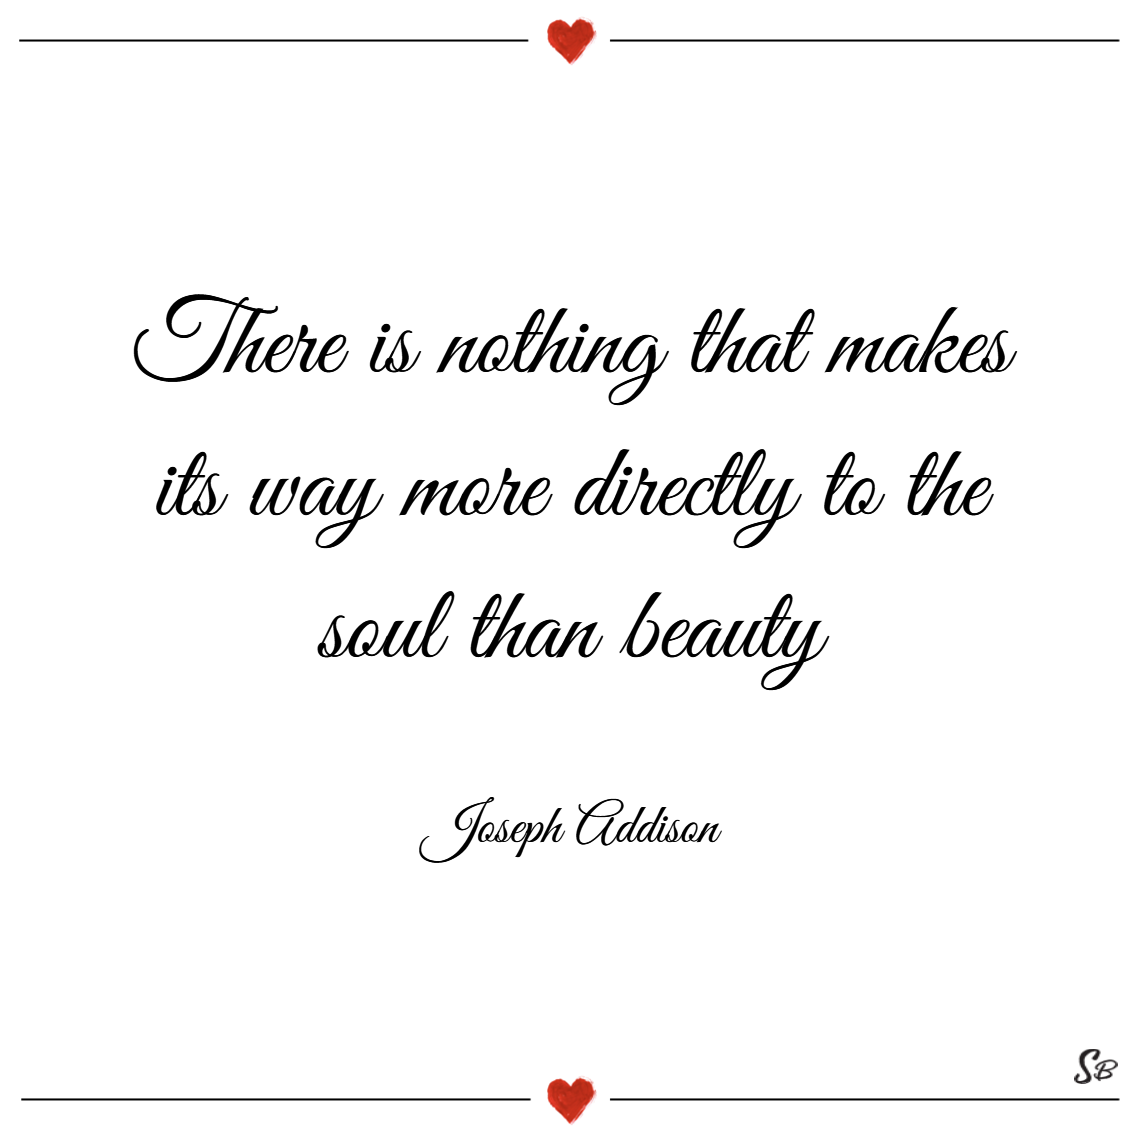 There is nothing that makes its way more directly to the soul than beauty. – joseph addison